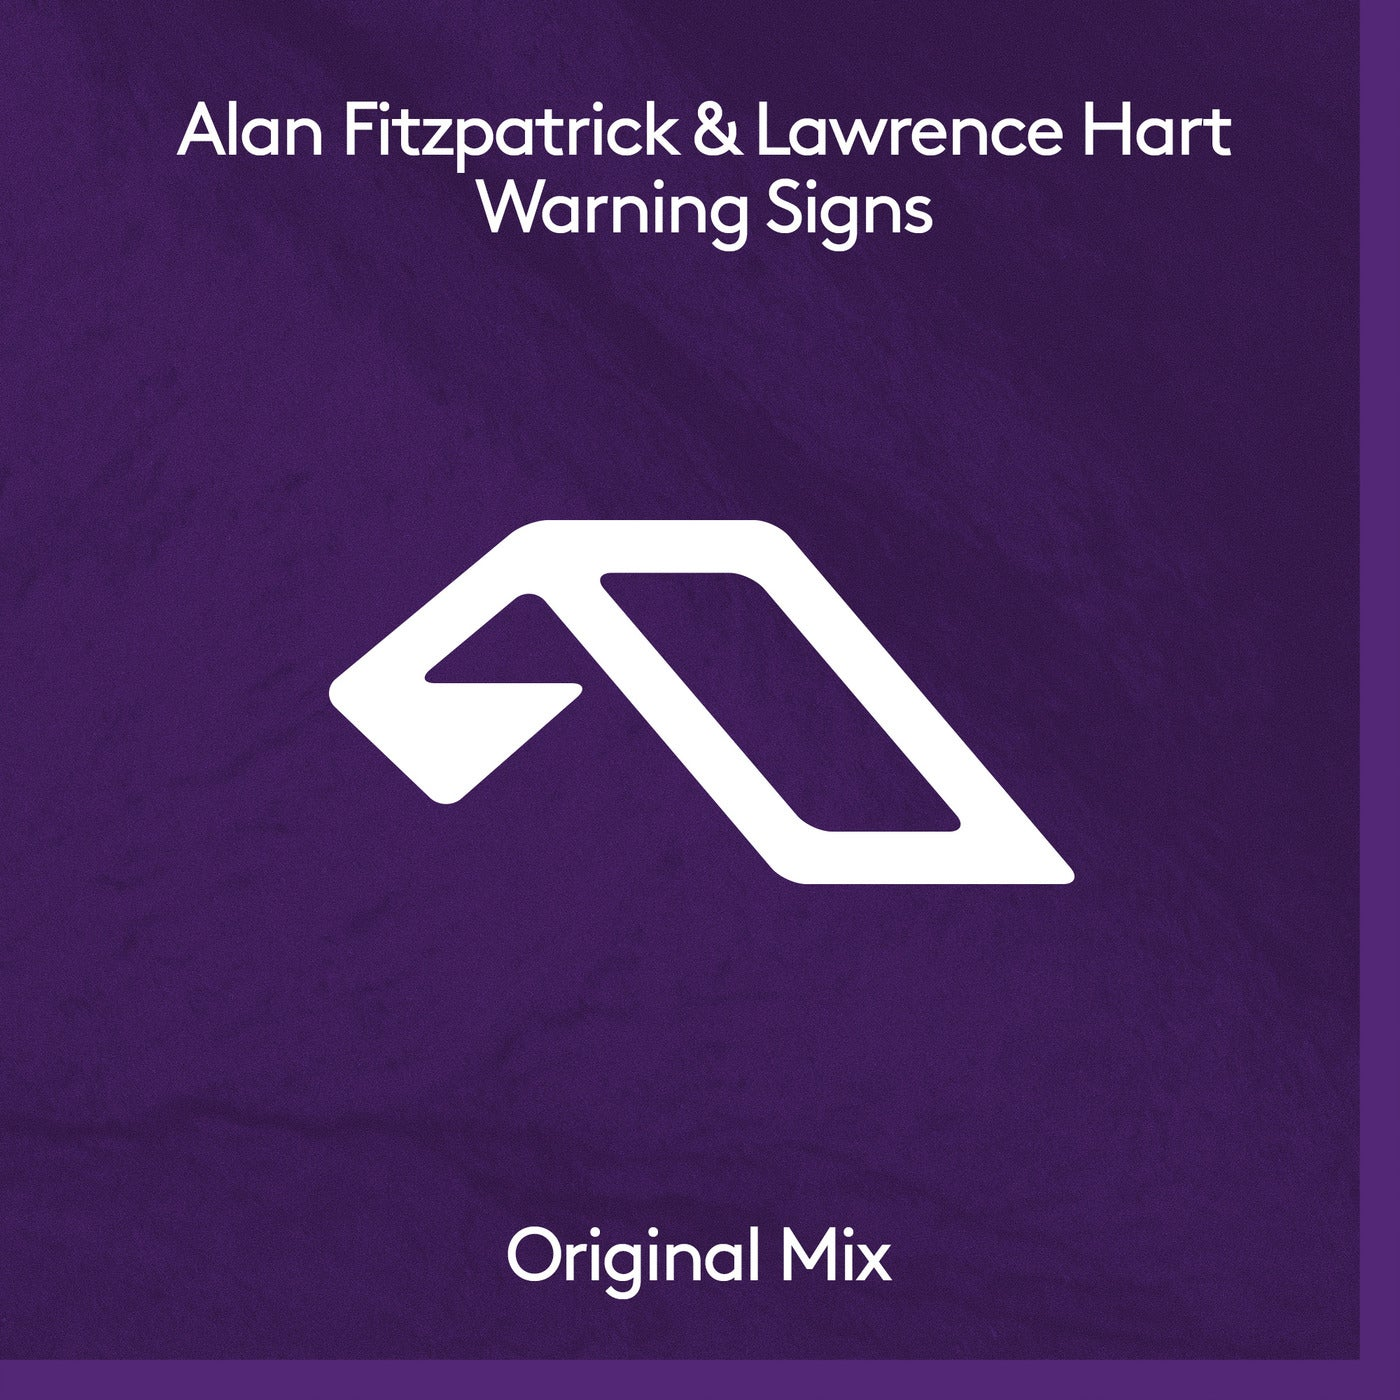 Download Warning Signs on Electrobuzz